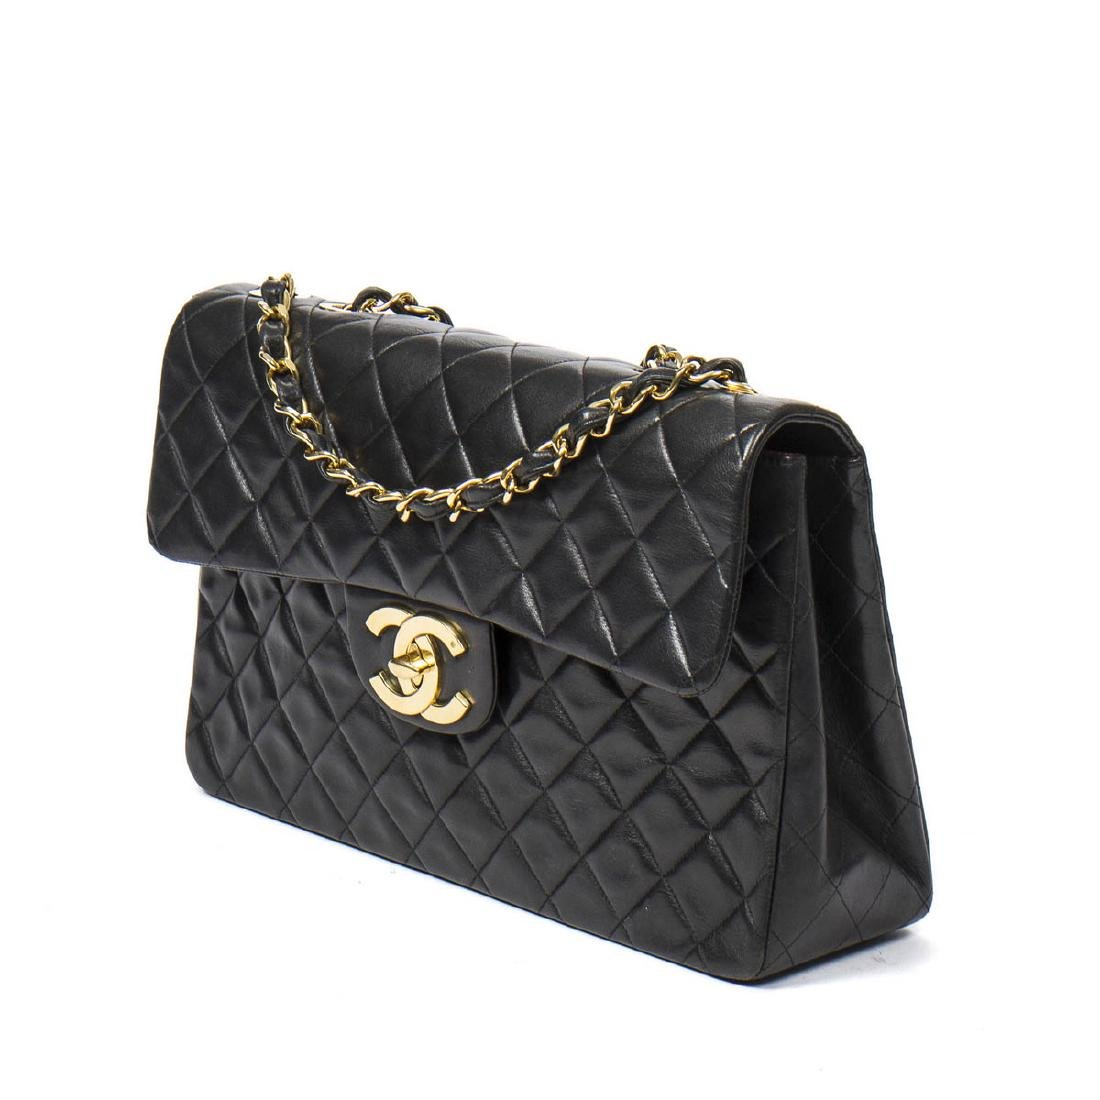 Chanel Maxi Jumbo in Black Quilted Leather - 2